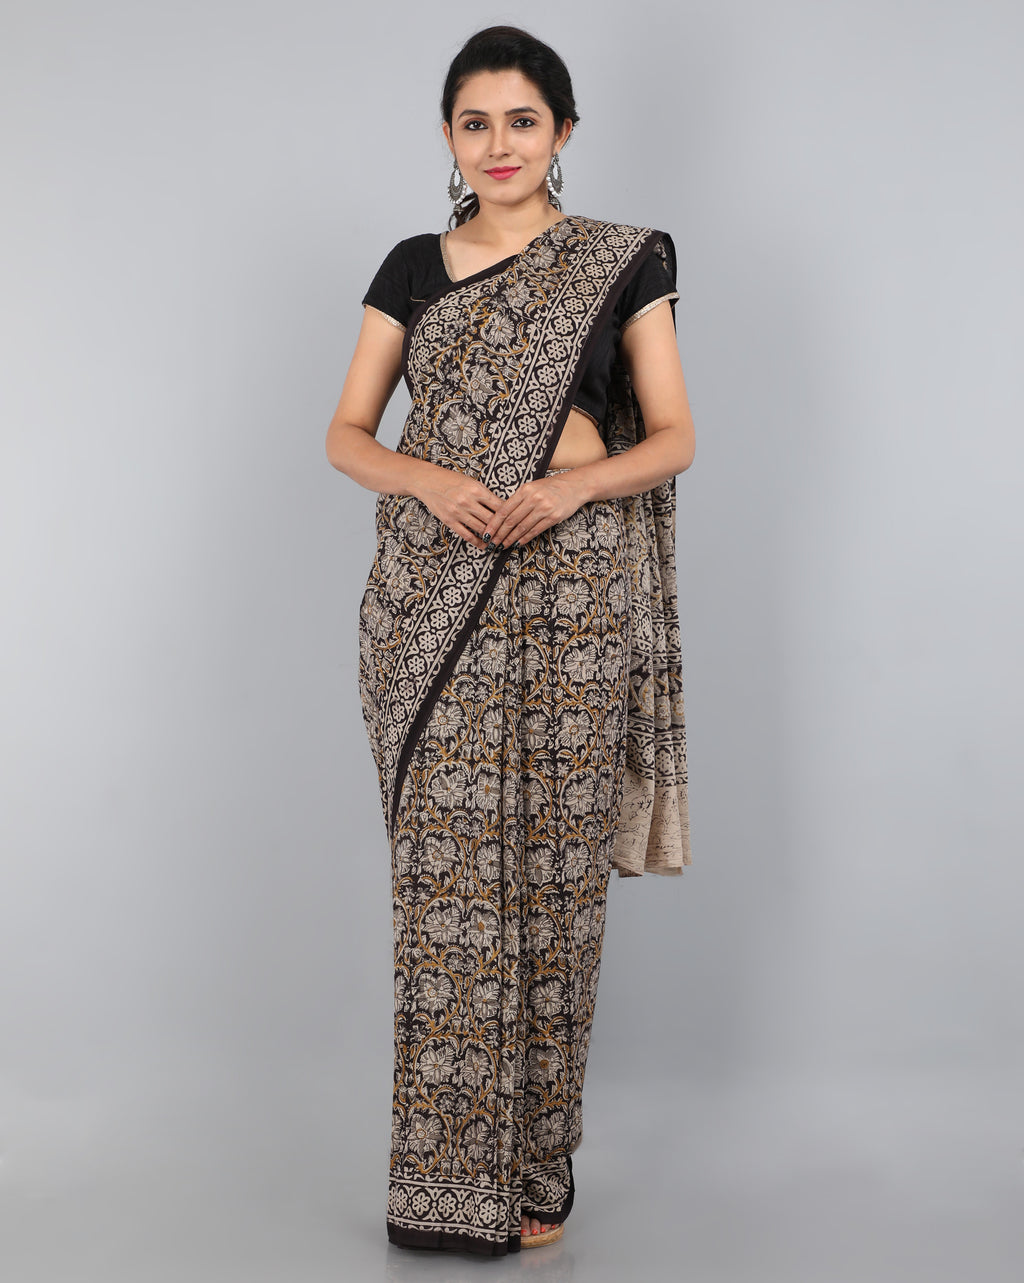 Pedana Kalamkari - Hand Block Printed - Mul Cotton Saree 11